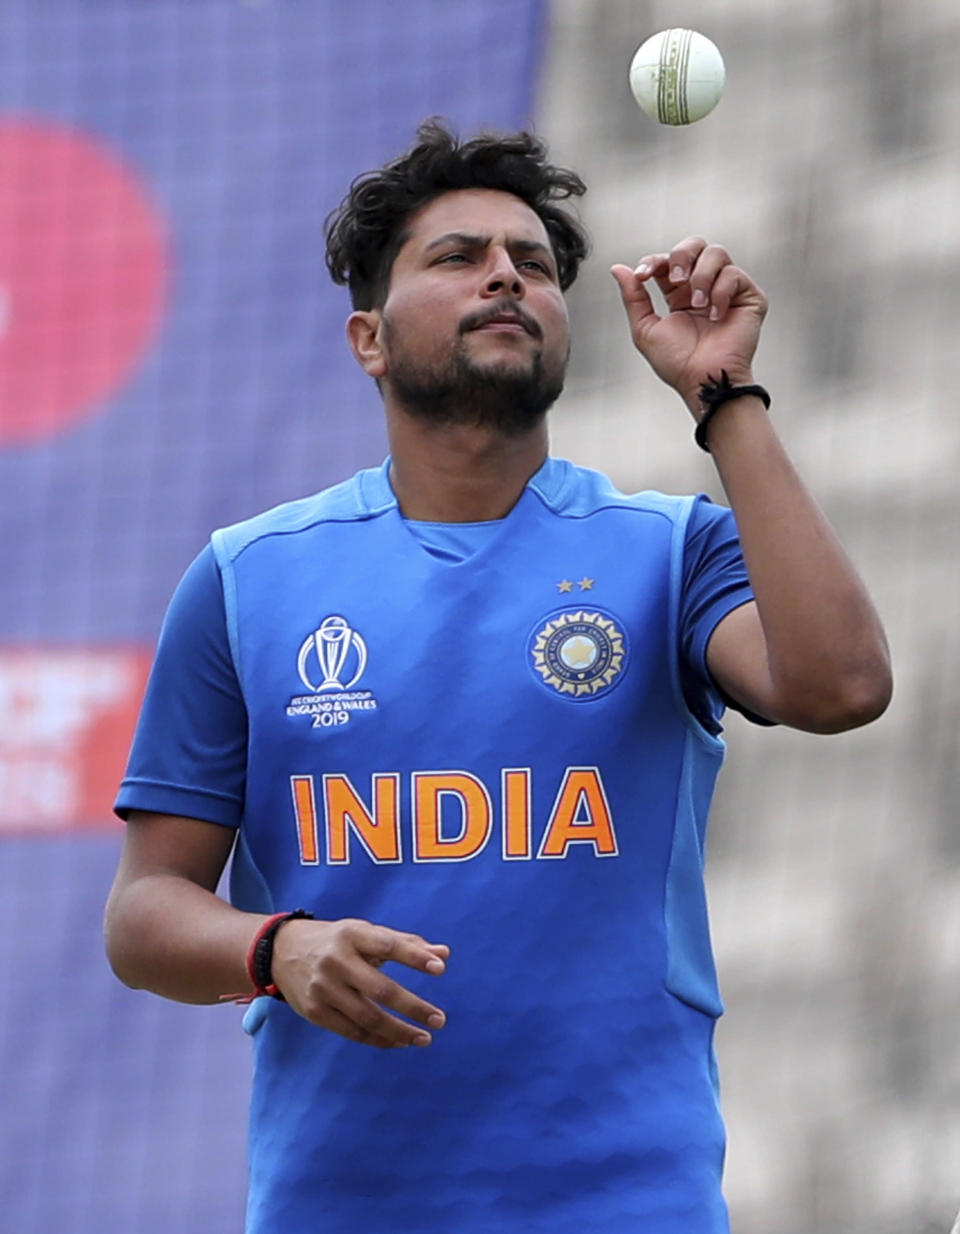 India's Kuldeep Yadav prepares to bowl in the nets during a training session ahead of their Cricket World Cup match against South Africa at Ageas Bowl in Southampton, England, Monday, June 3, 2019. (AP Photo/Aijaz Rahi)